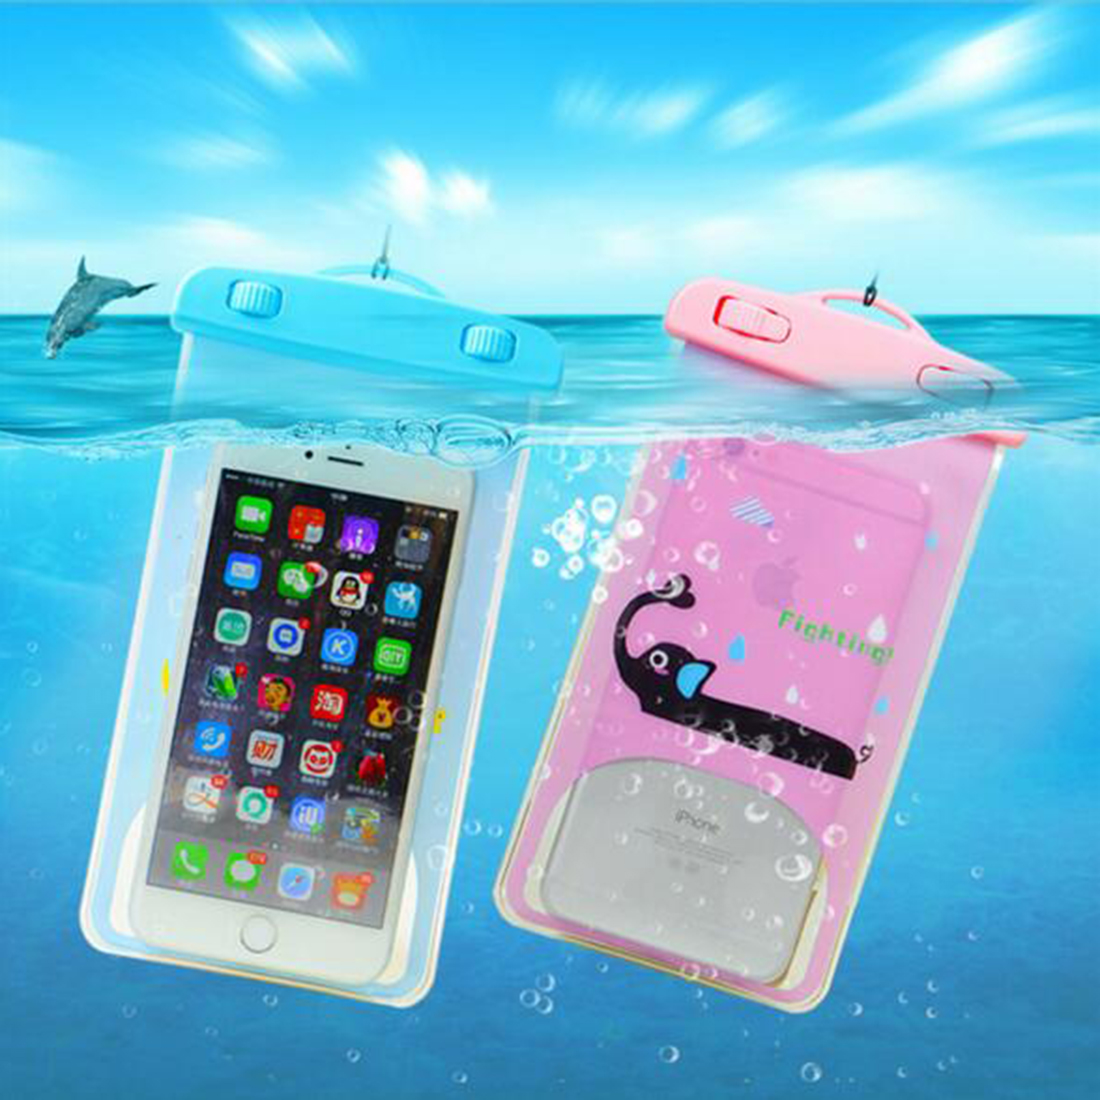 Fashion Waterproof Phone case underwater photography diving Pouch Dry bag for iphone Samsung Android ios